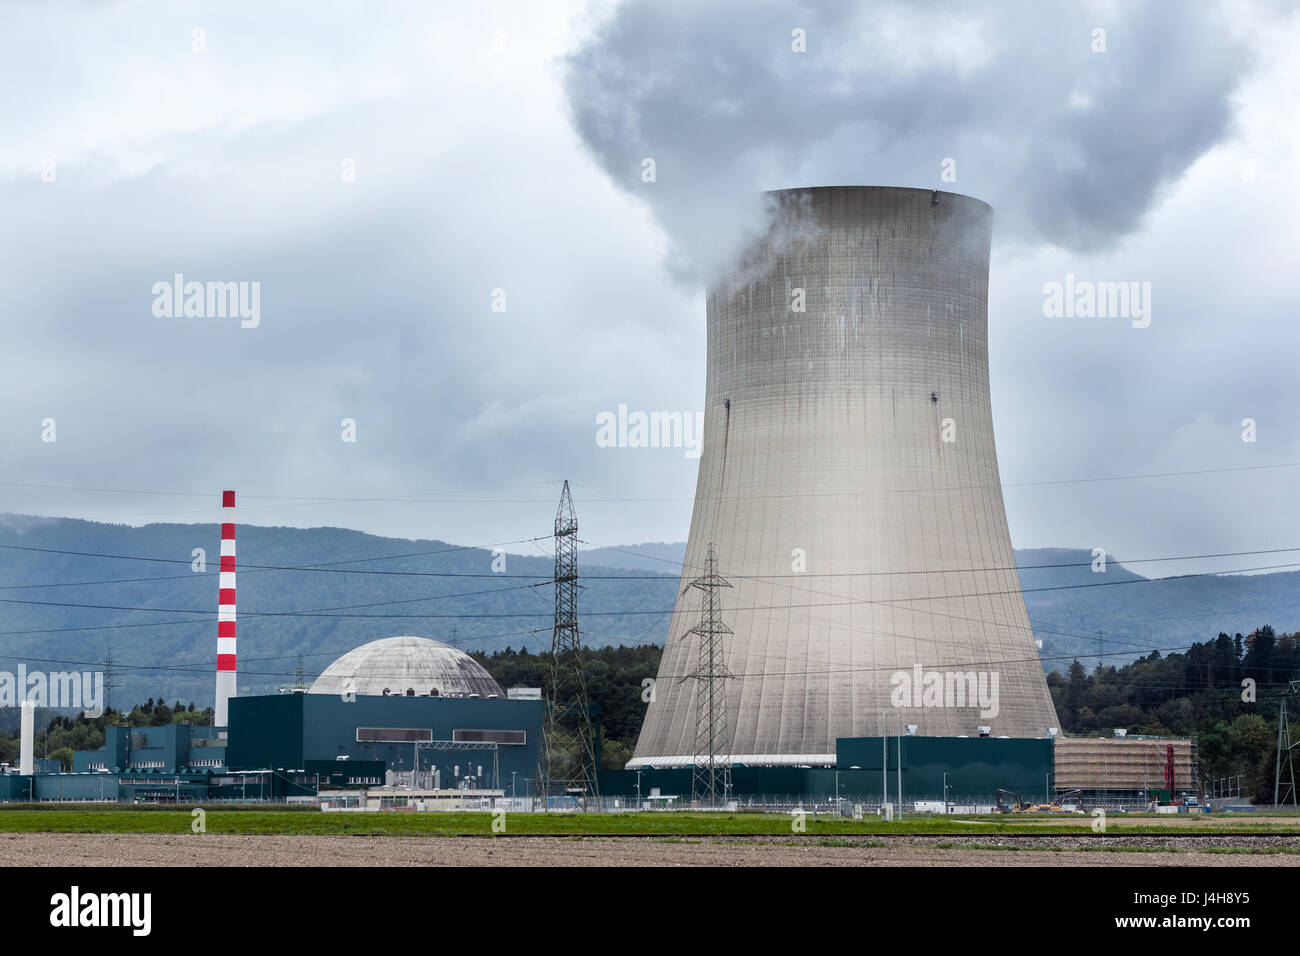 Cooling tower of a nuclear power station. - Stock Image